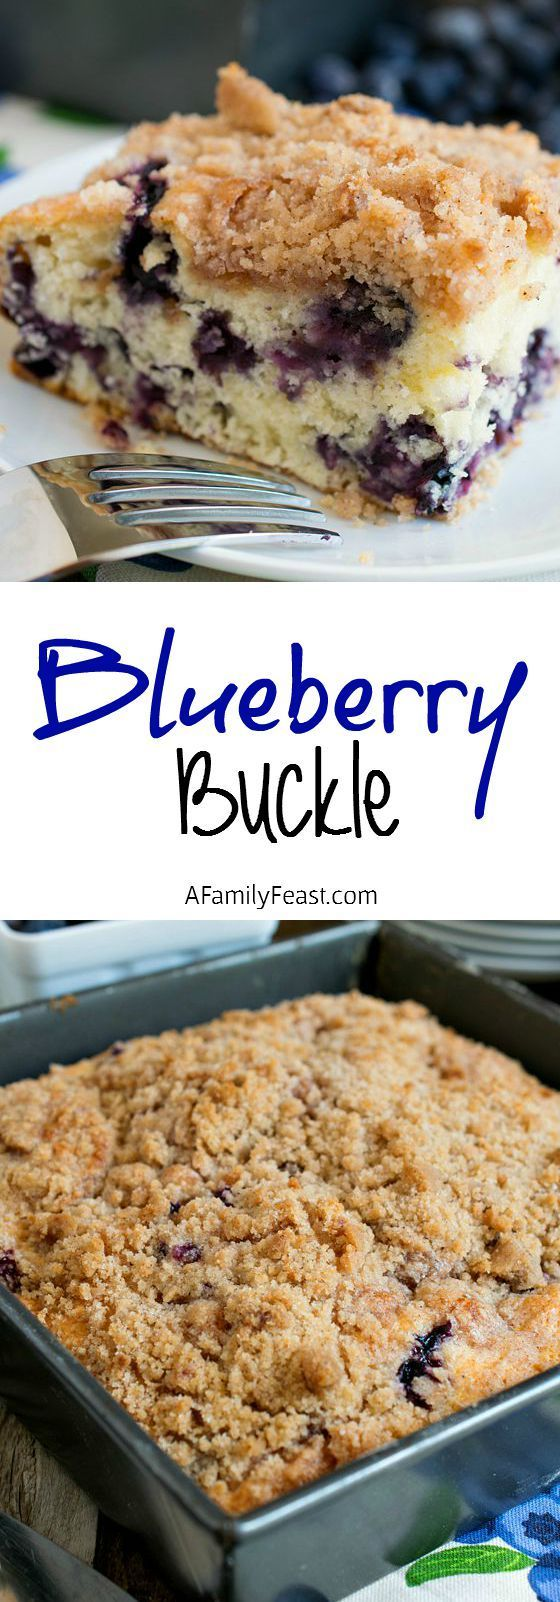 A delicious 100 year old family recipe for Blueberry Buckle that has been passed down through generations!: